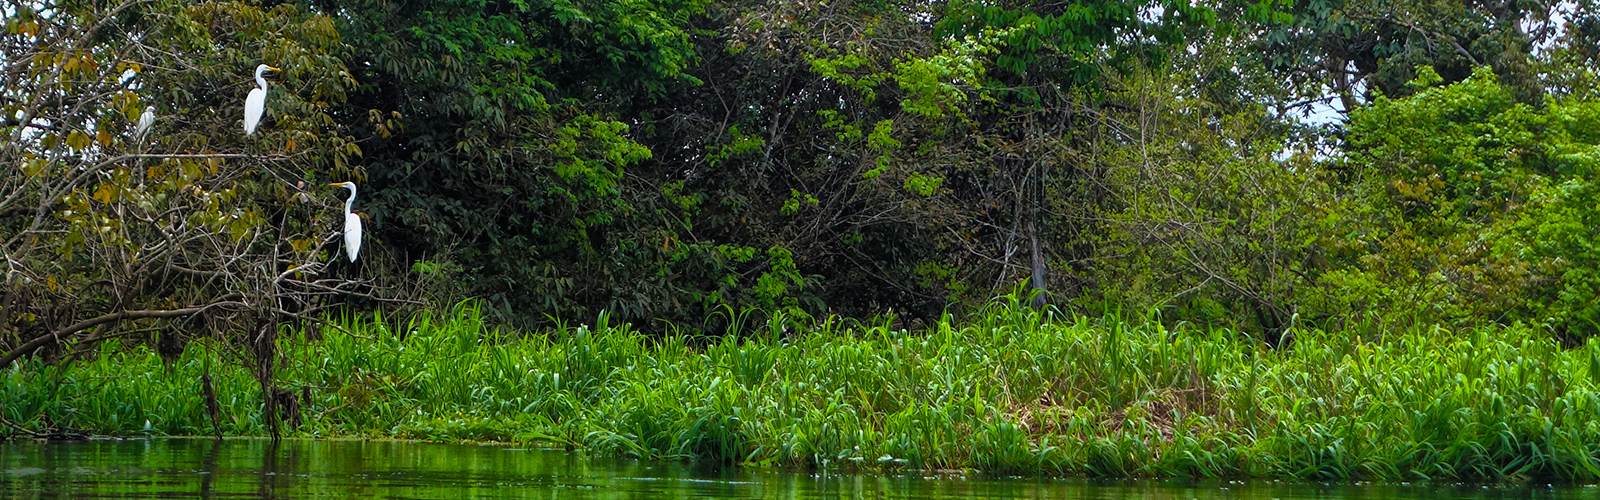 Everything You Need to Know About the Amazon Rainforest